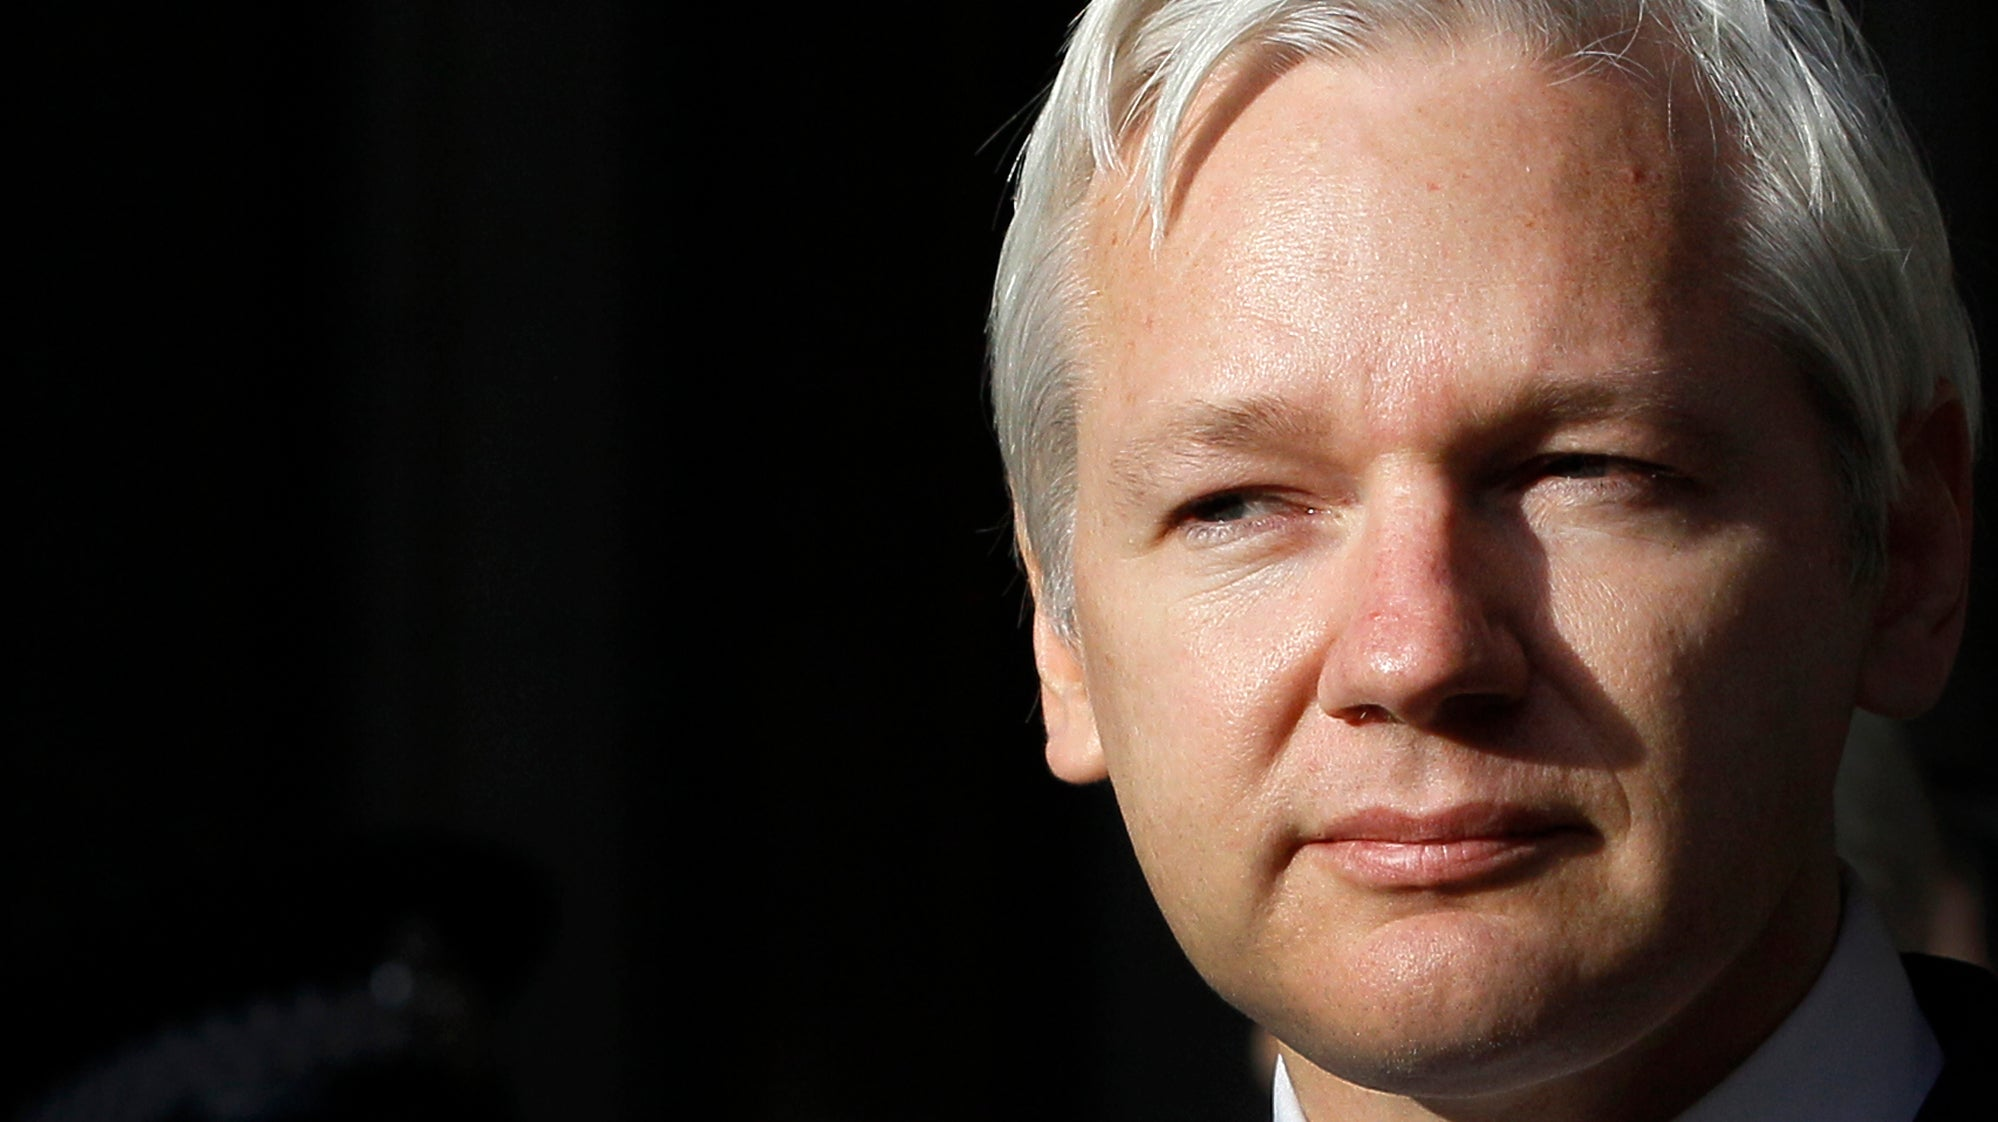 Mistake In Filing Suggests WikiLeaks Founder Julian Assange Has Been Charged